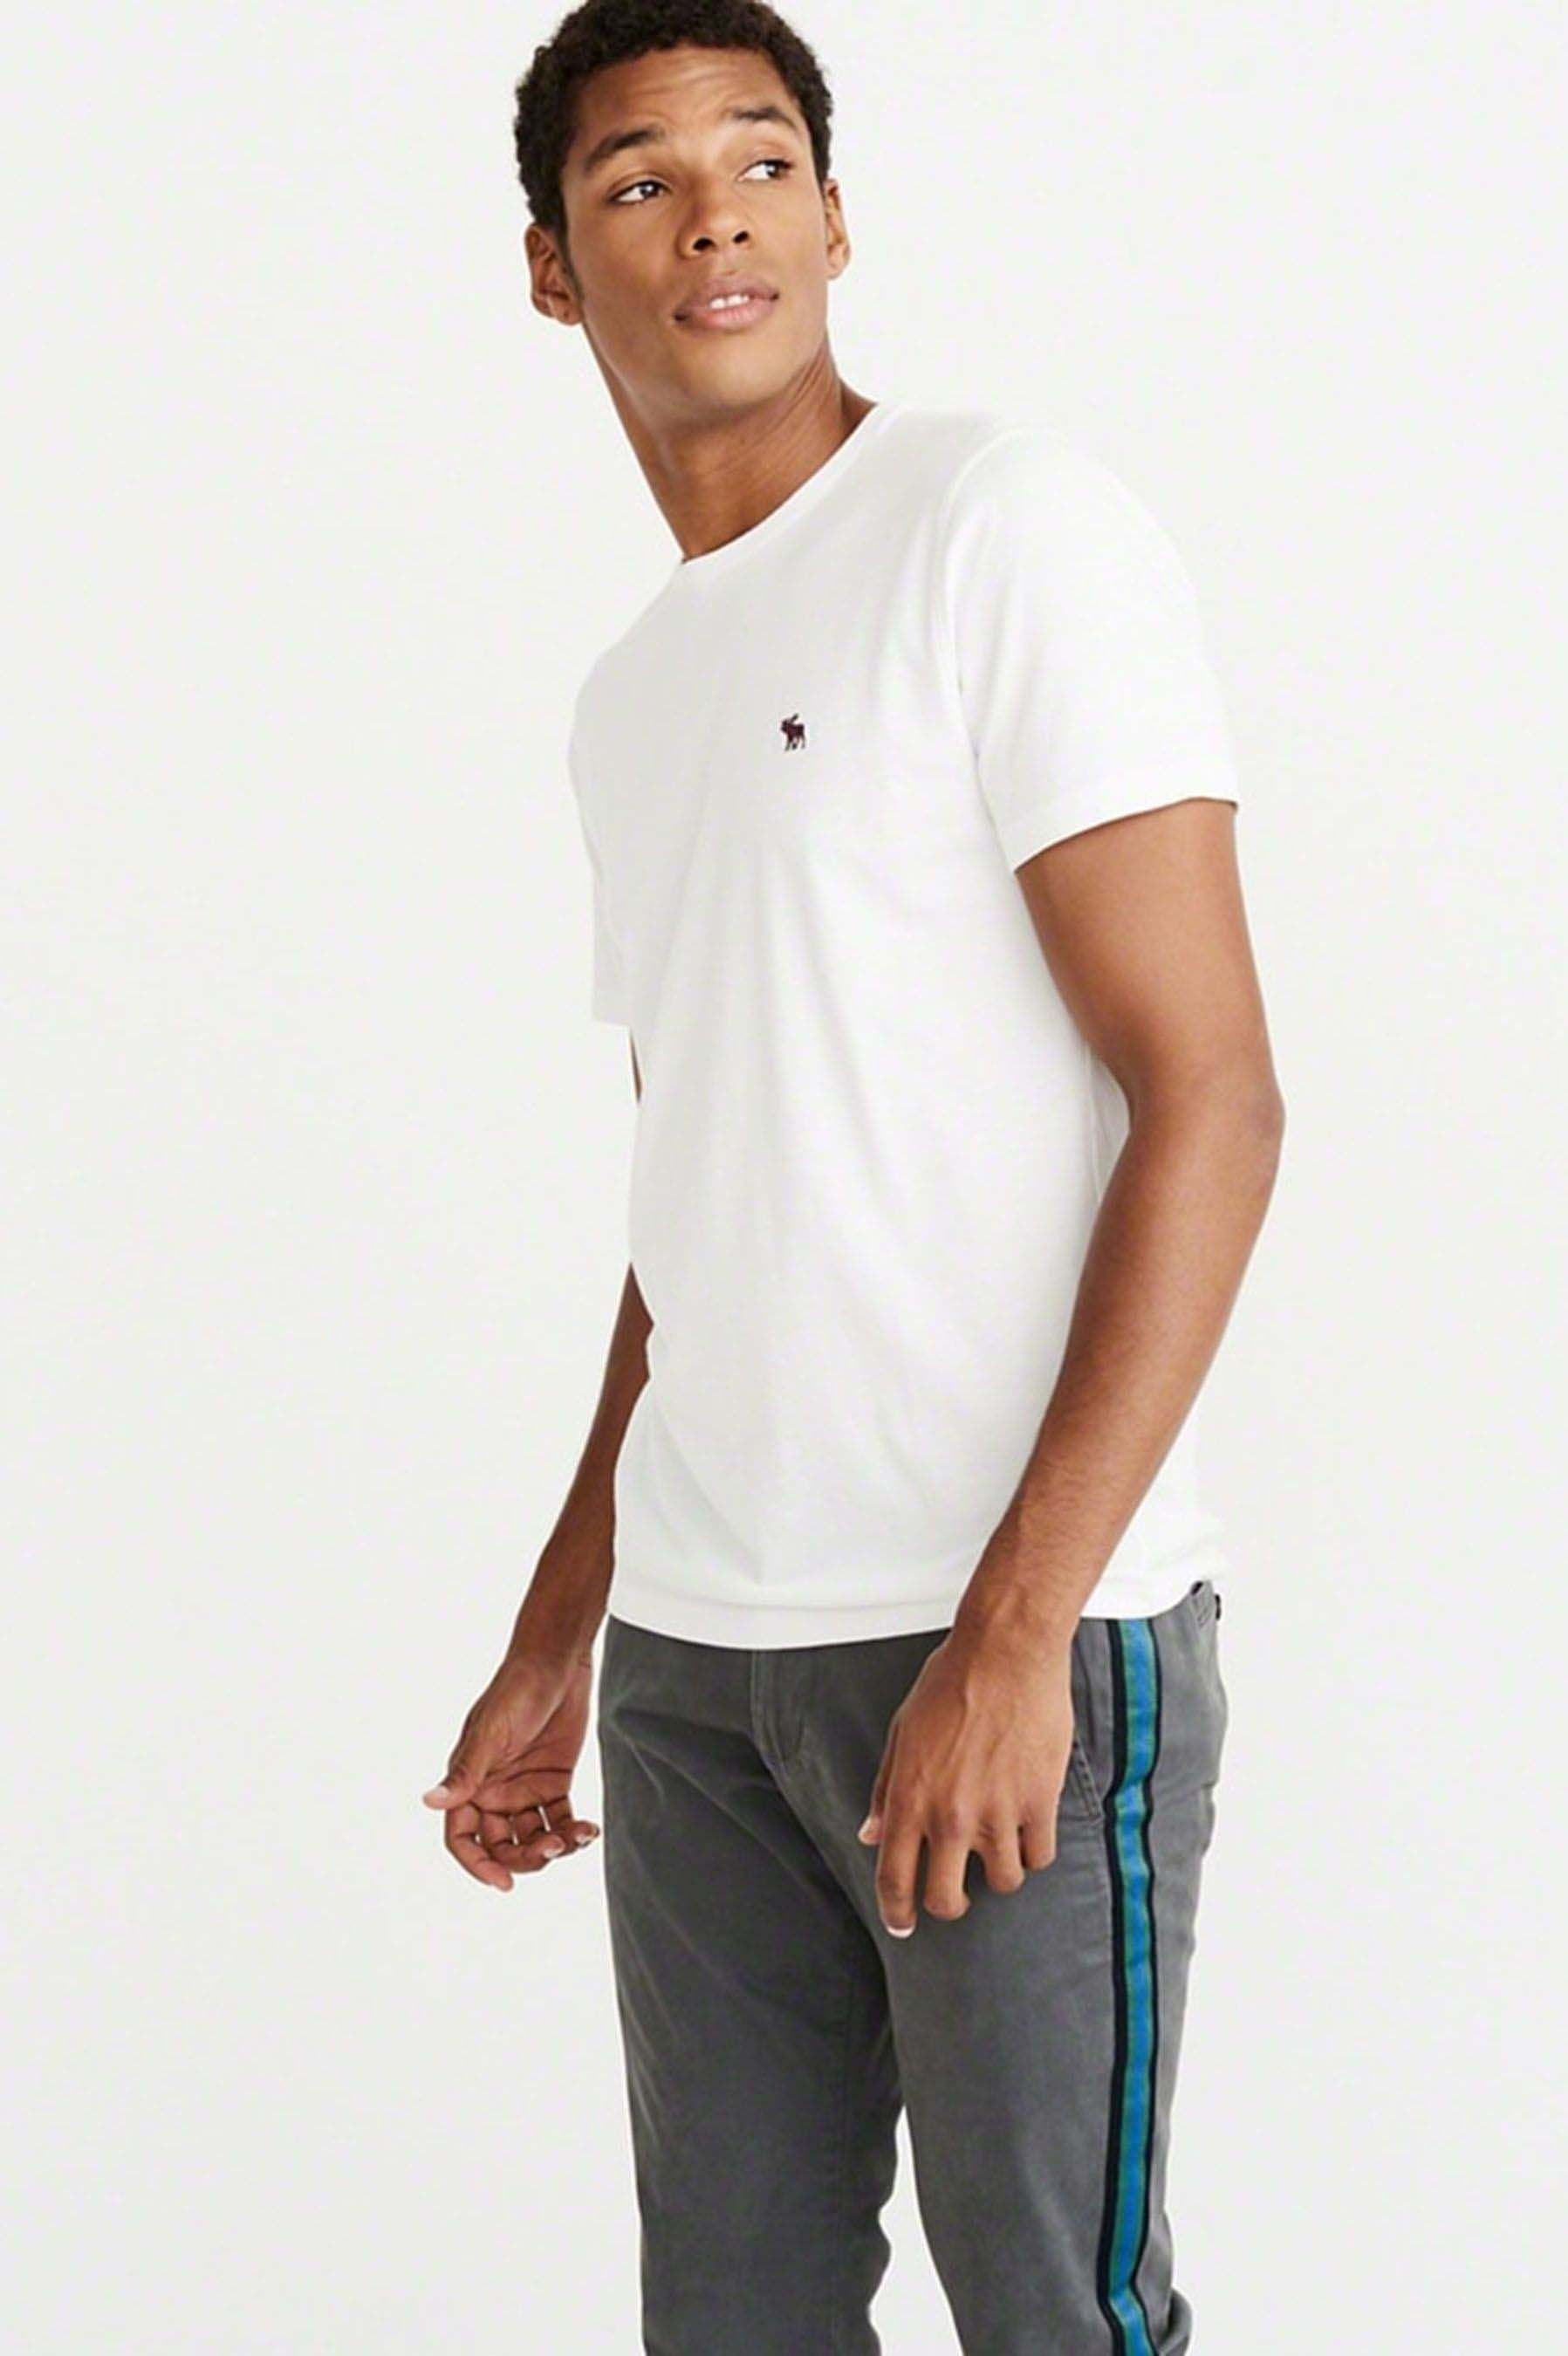 e1c307d2a8b5b2 Mens Abercrombie & Fitch Icon Tee - White | Abercrombie & Fitch ...